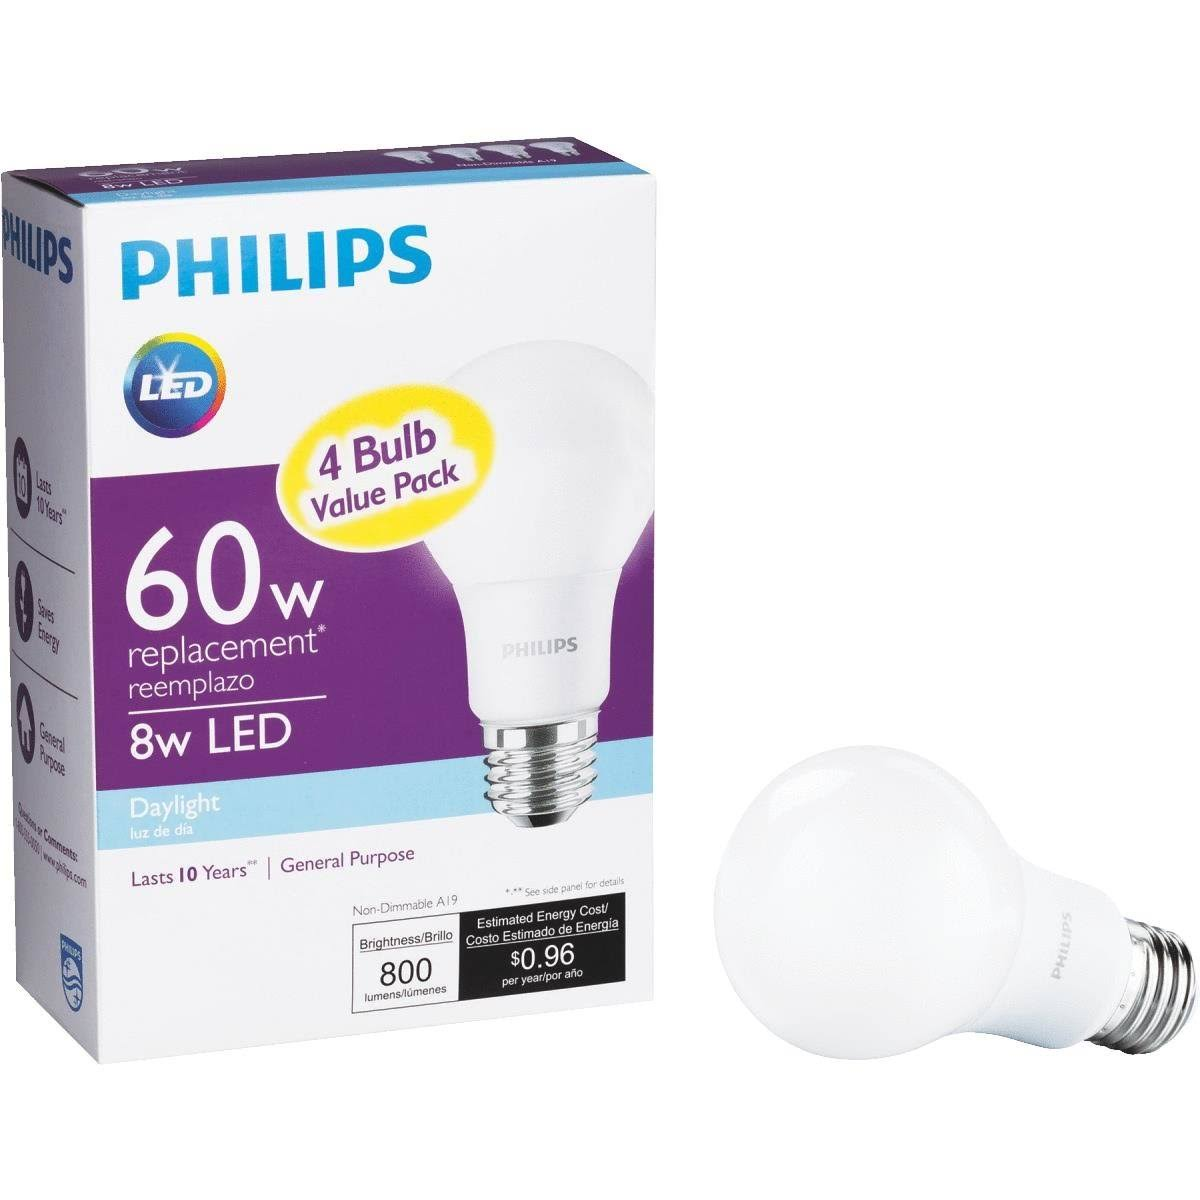 Philips LED A19 Daylight Bulb - 60W Equivalent